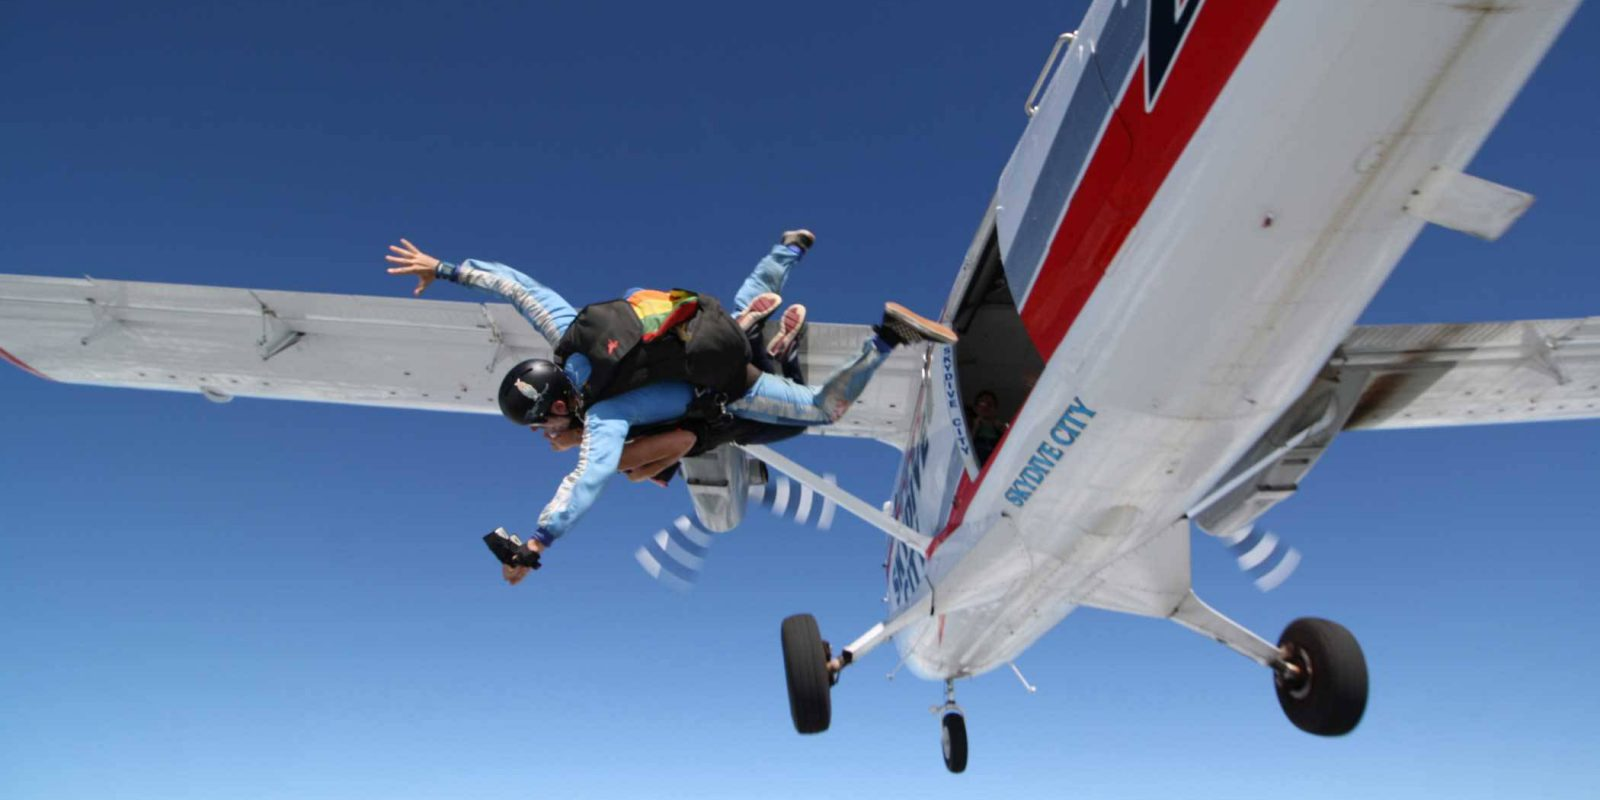 Female skydiver exiting Skydive City airplane with tandem instructor.